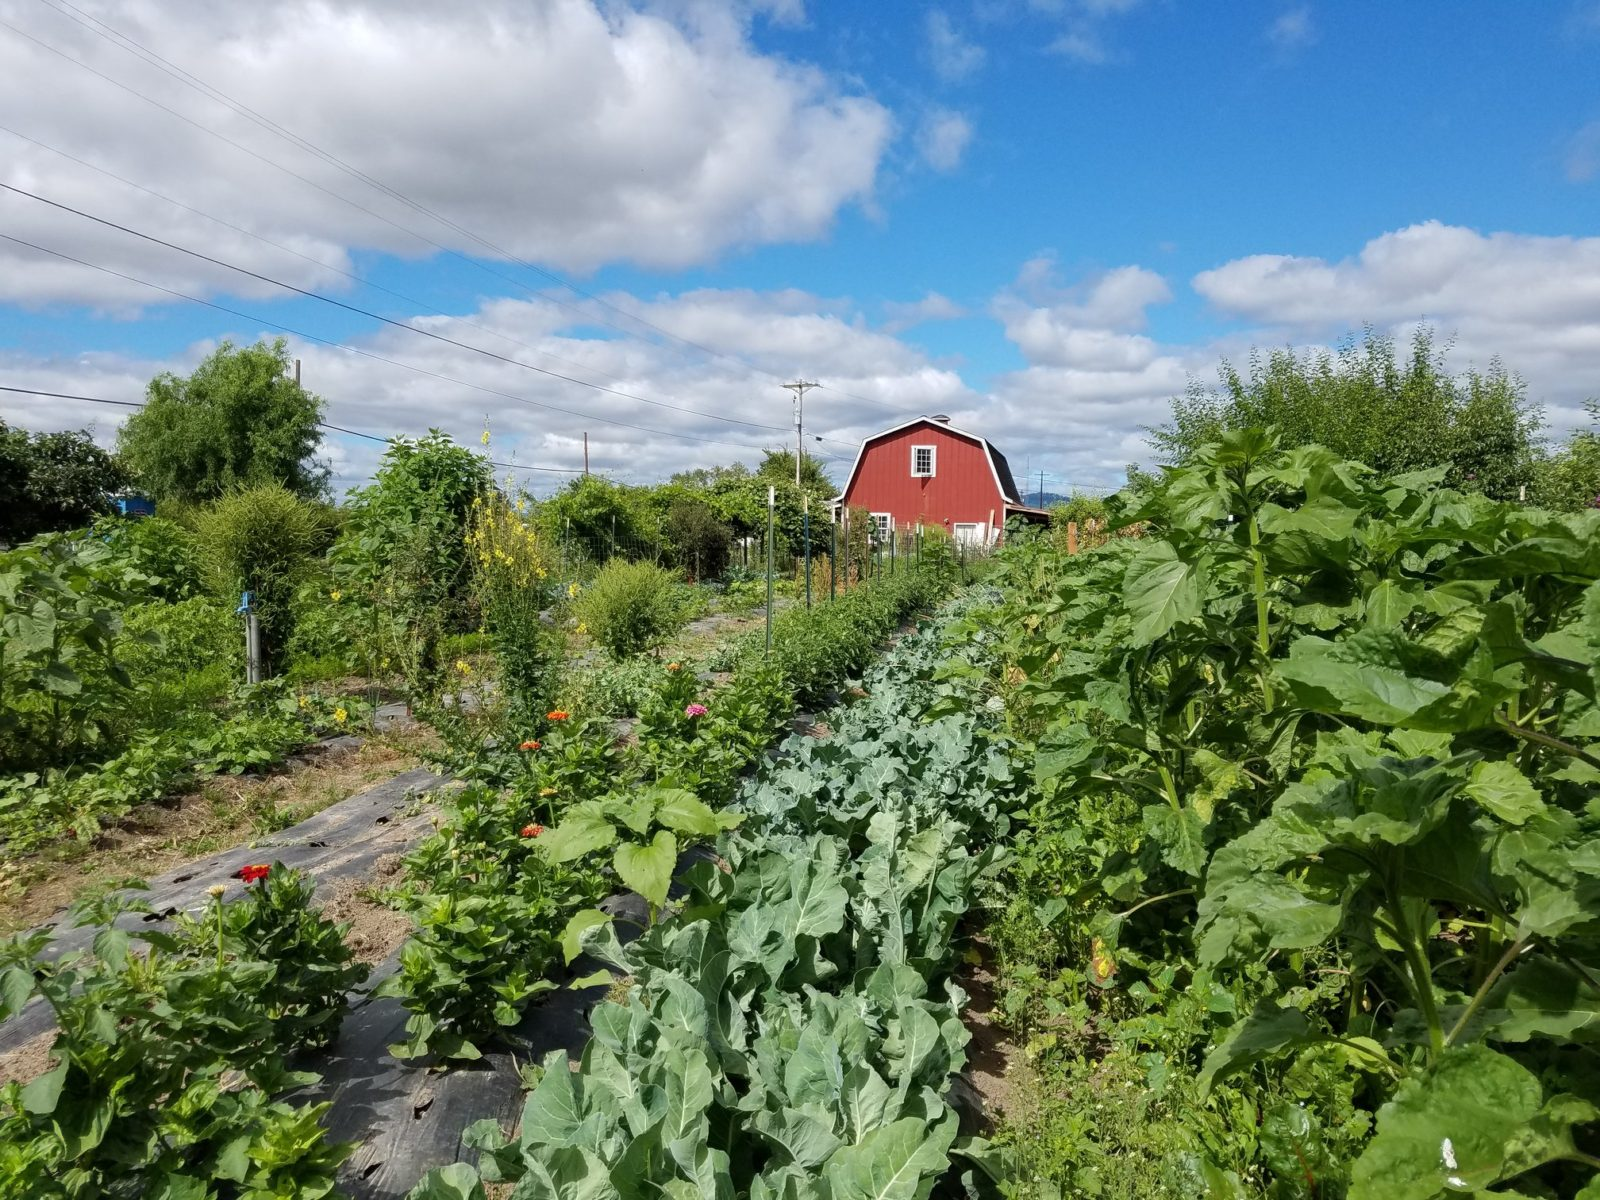 Photo showing a red barn and vegetable crops at Midway Farms in North Albany Oregon.